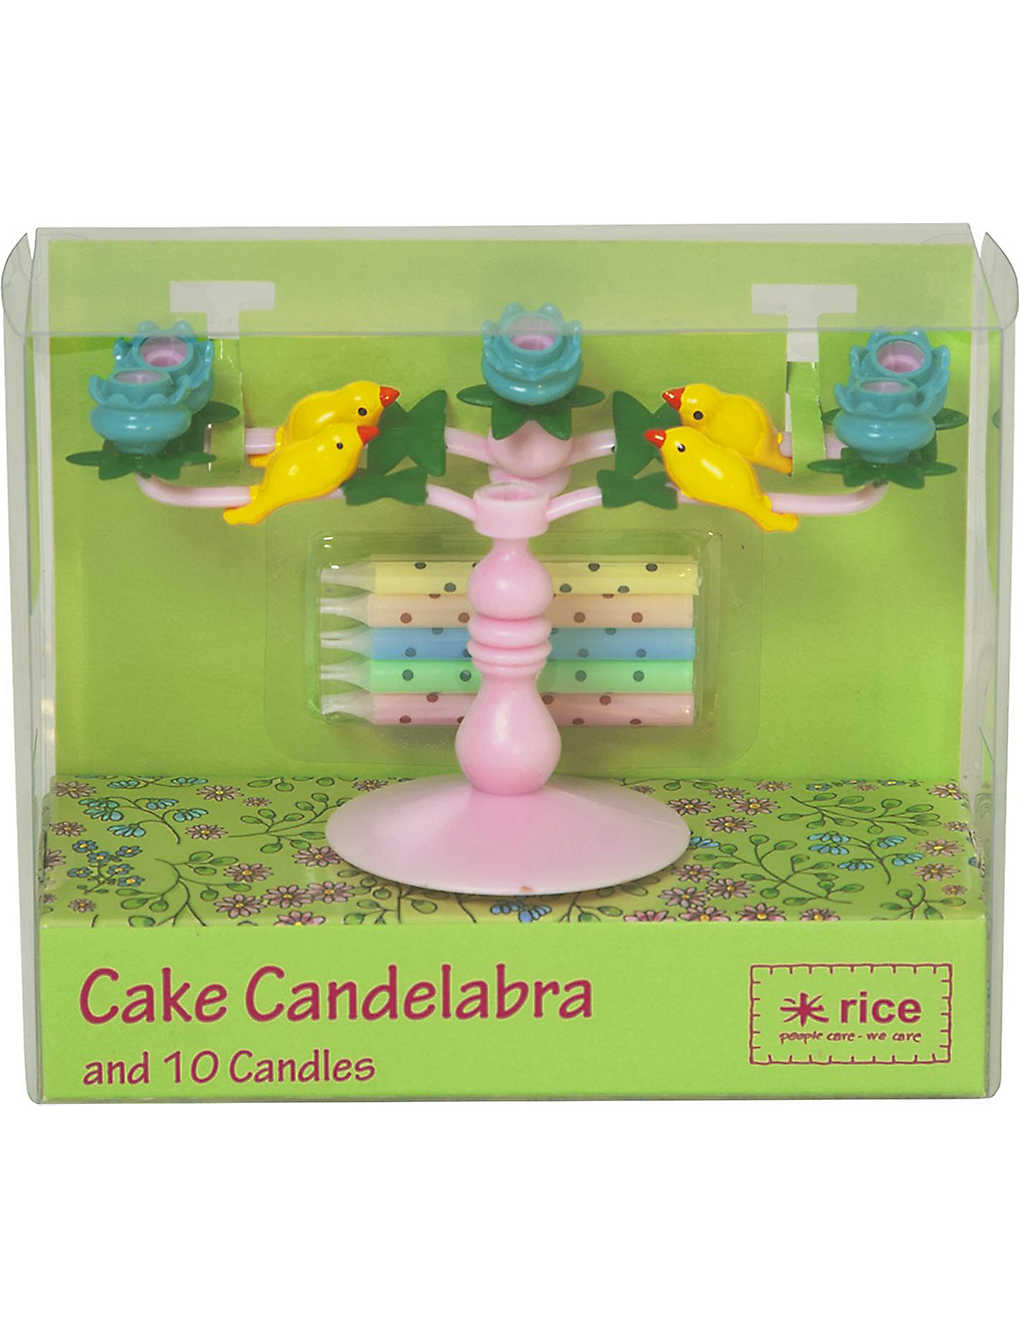 Cake Candelabra With 10 Candles